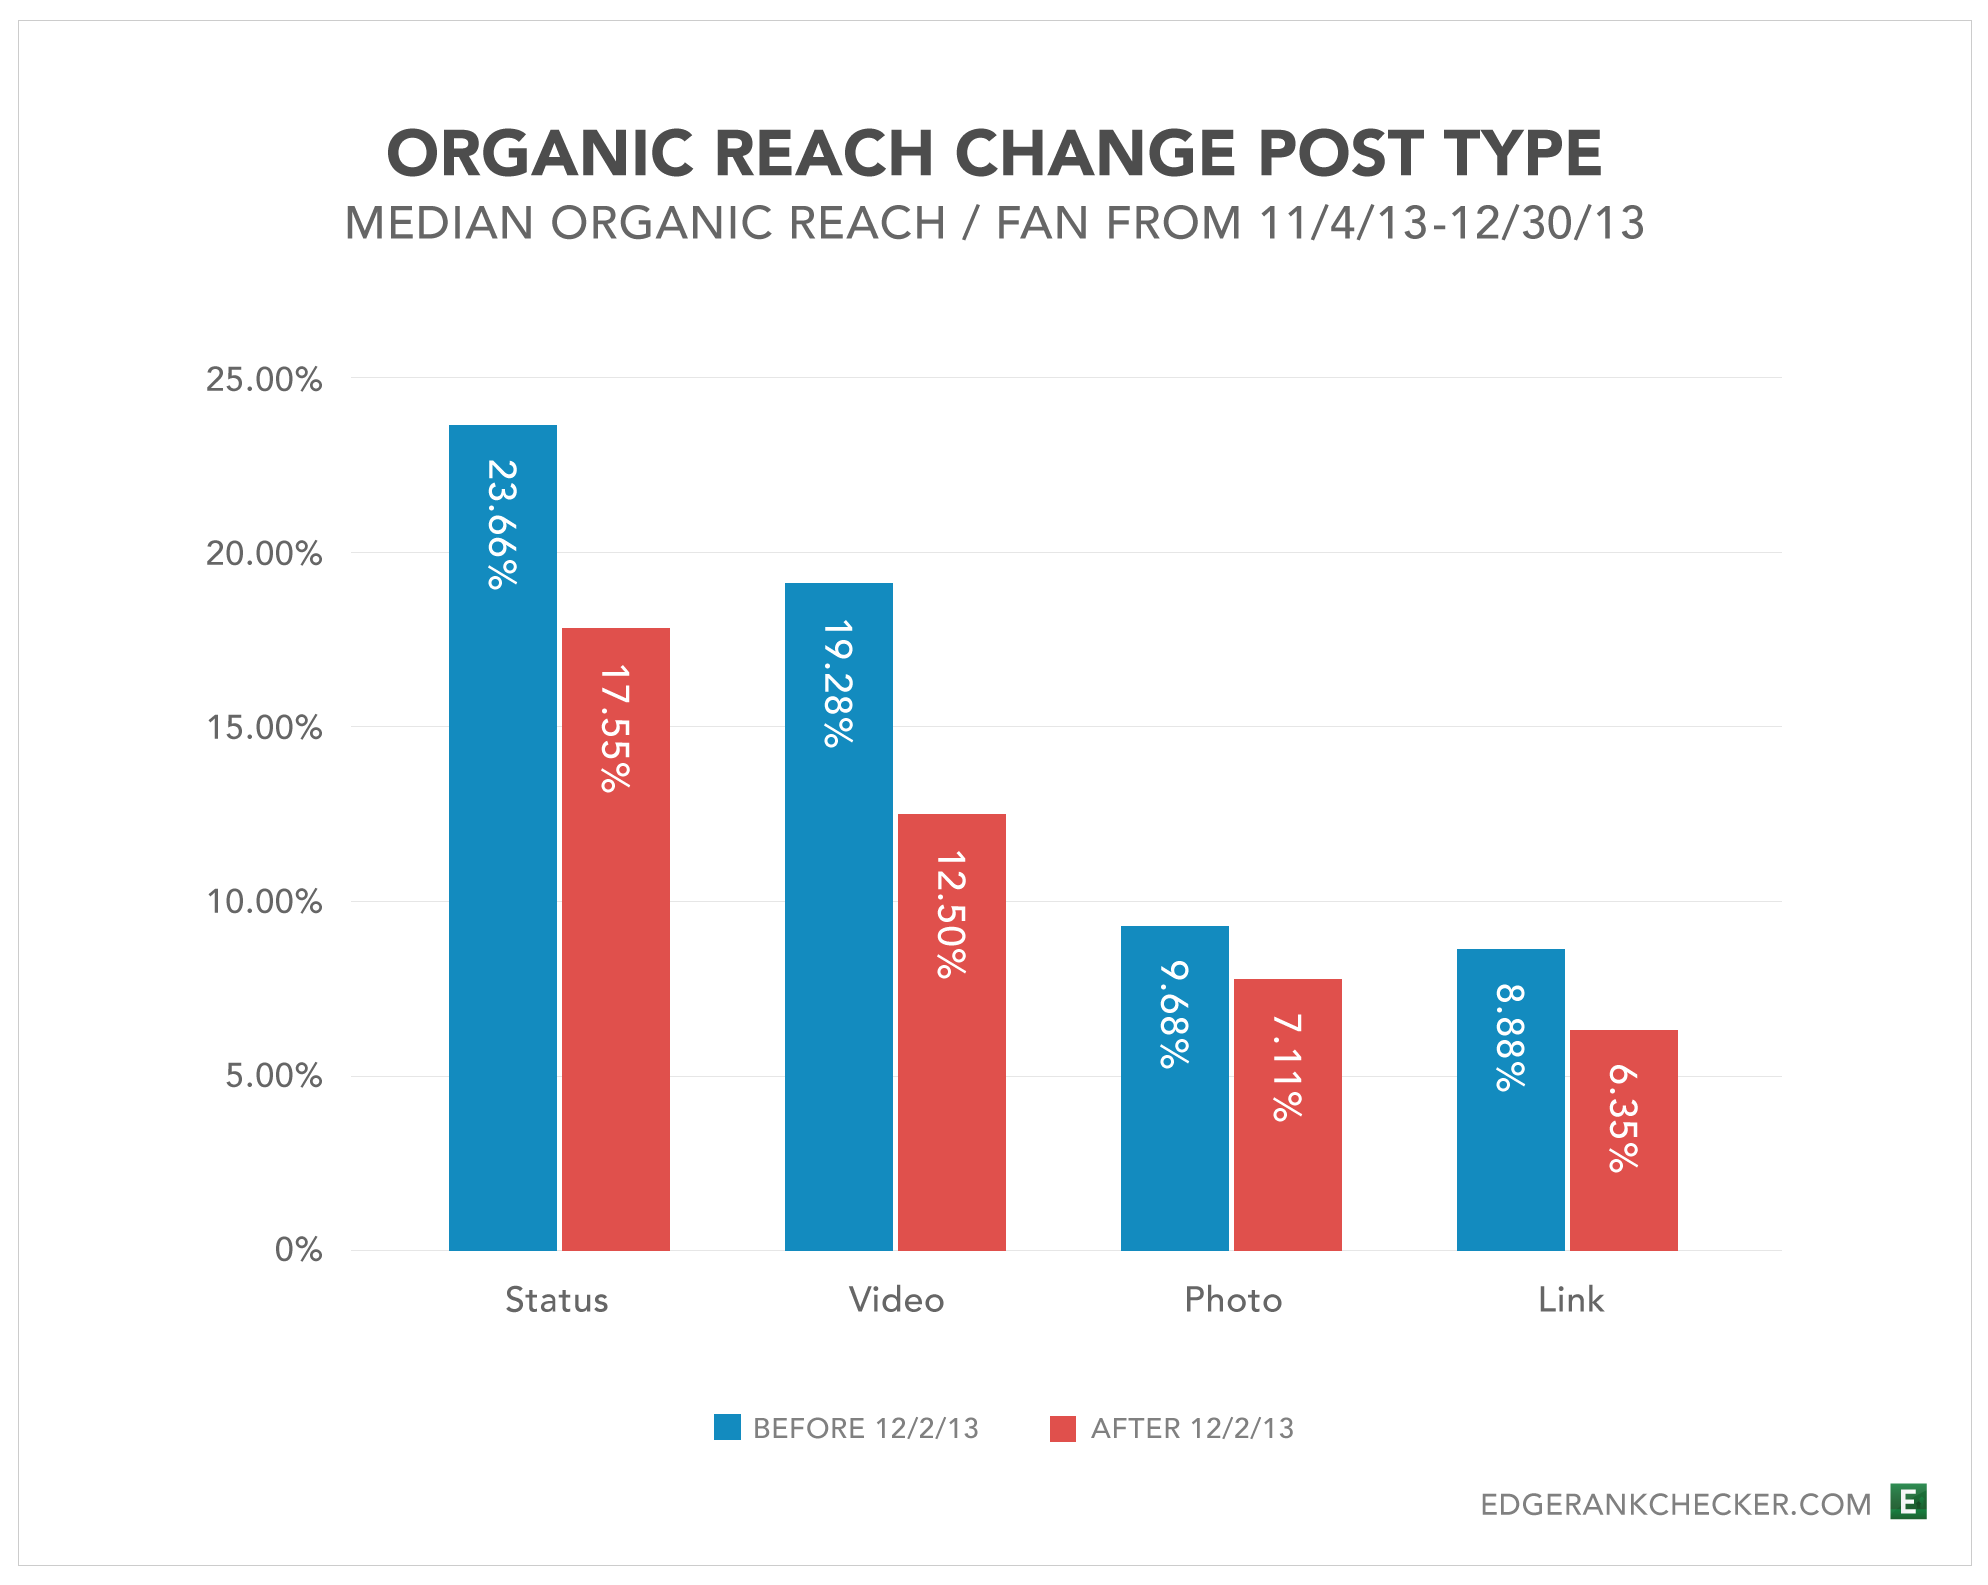 Organic reach change post type